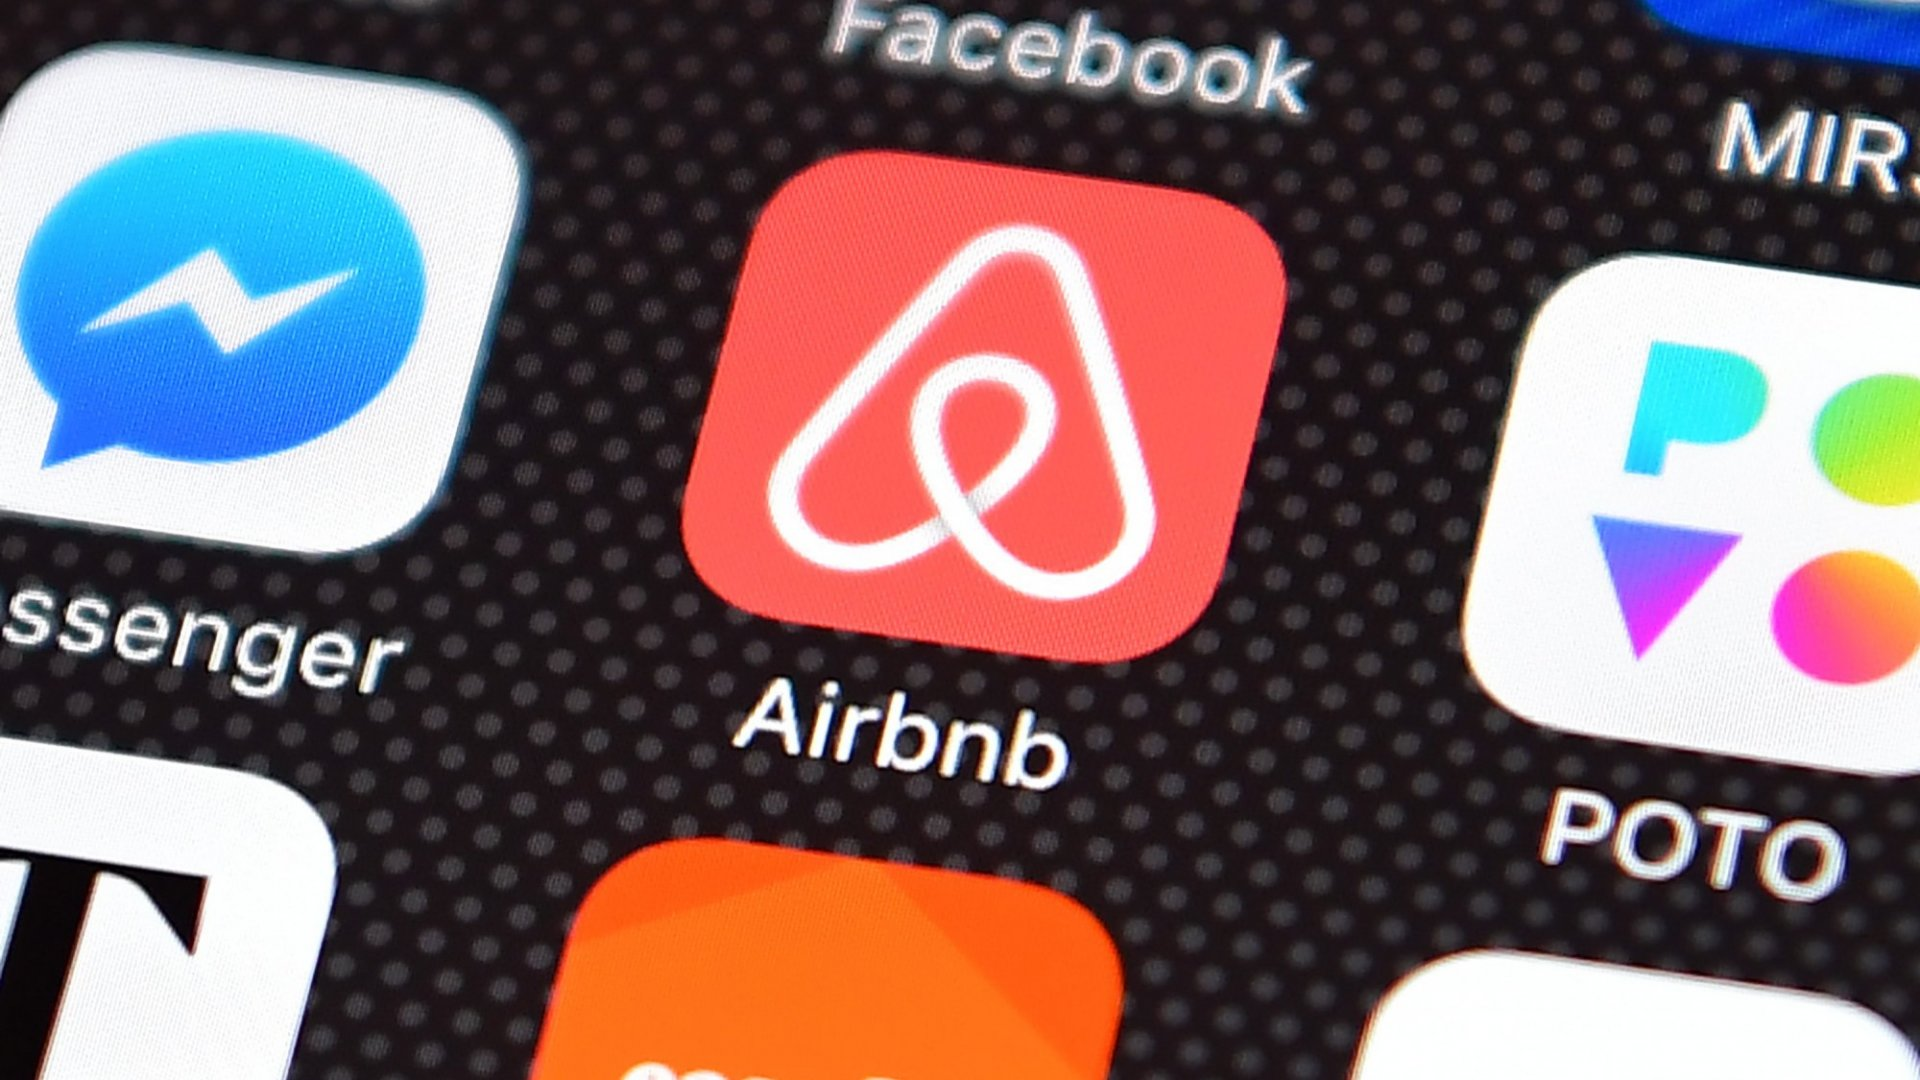 An Airbnb Host and Former Amazon Executive is Offering Mock Amazon Interviews in Seattle for $4,600